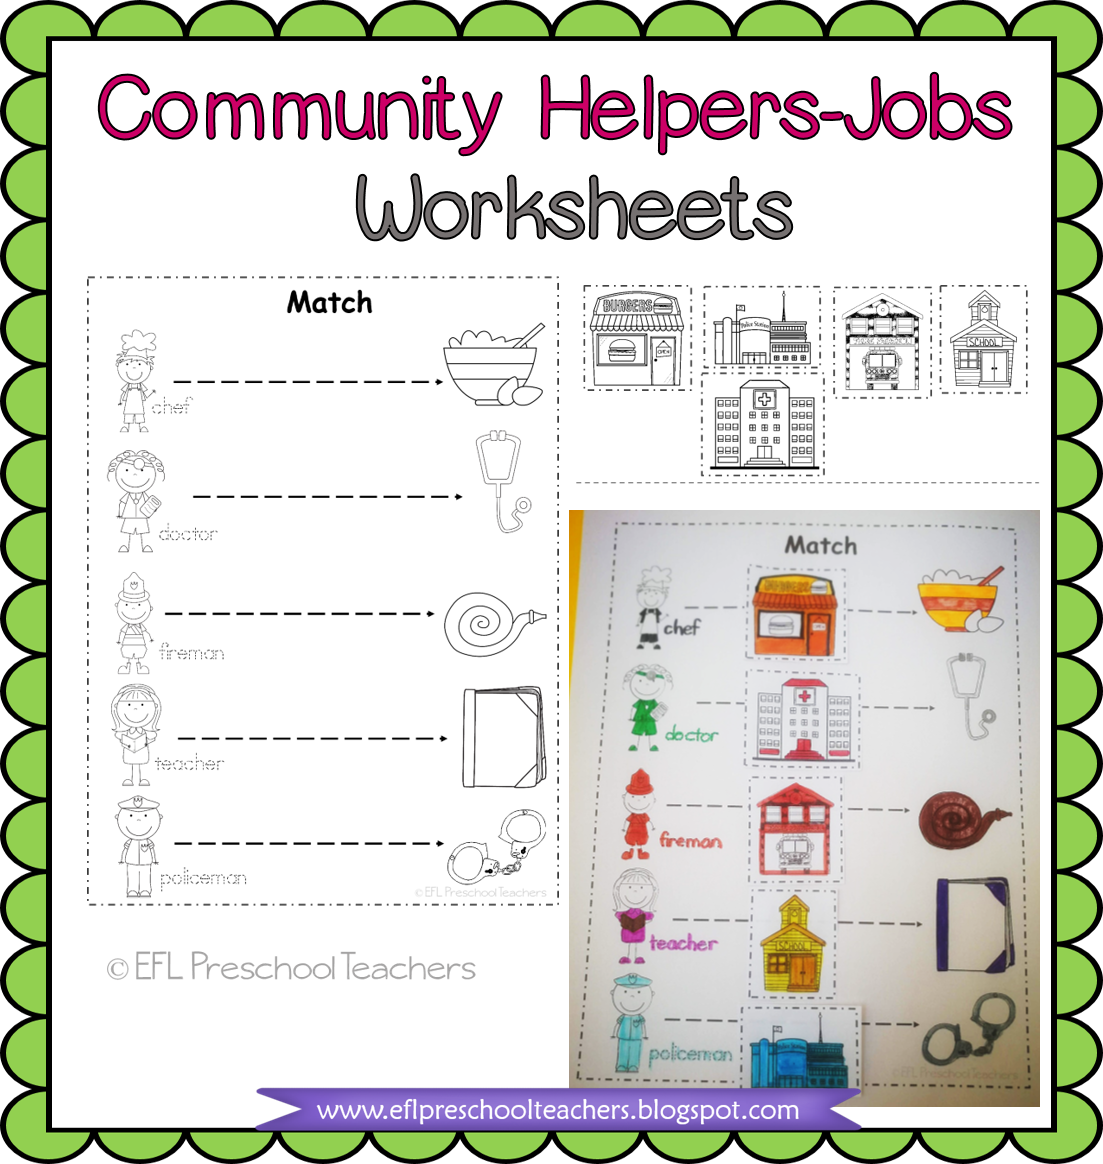 Esl Efl Preschool Teachers Esl Community Helpers